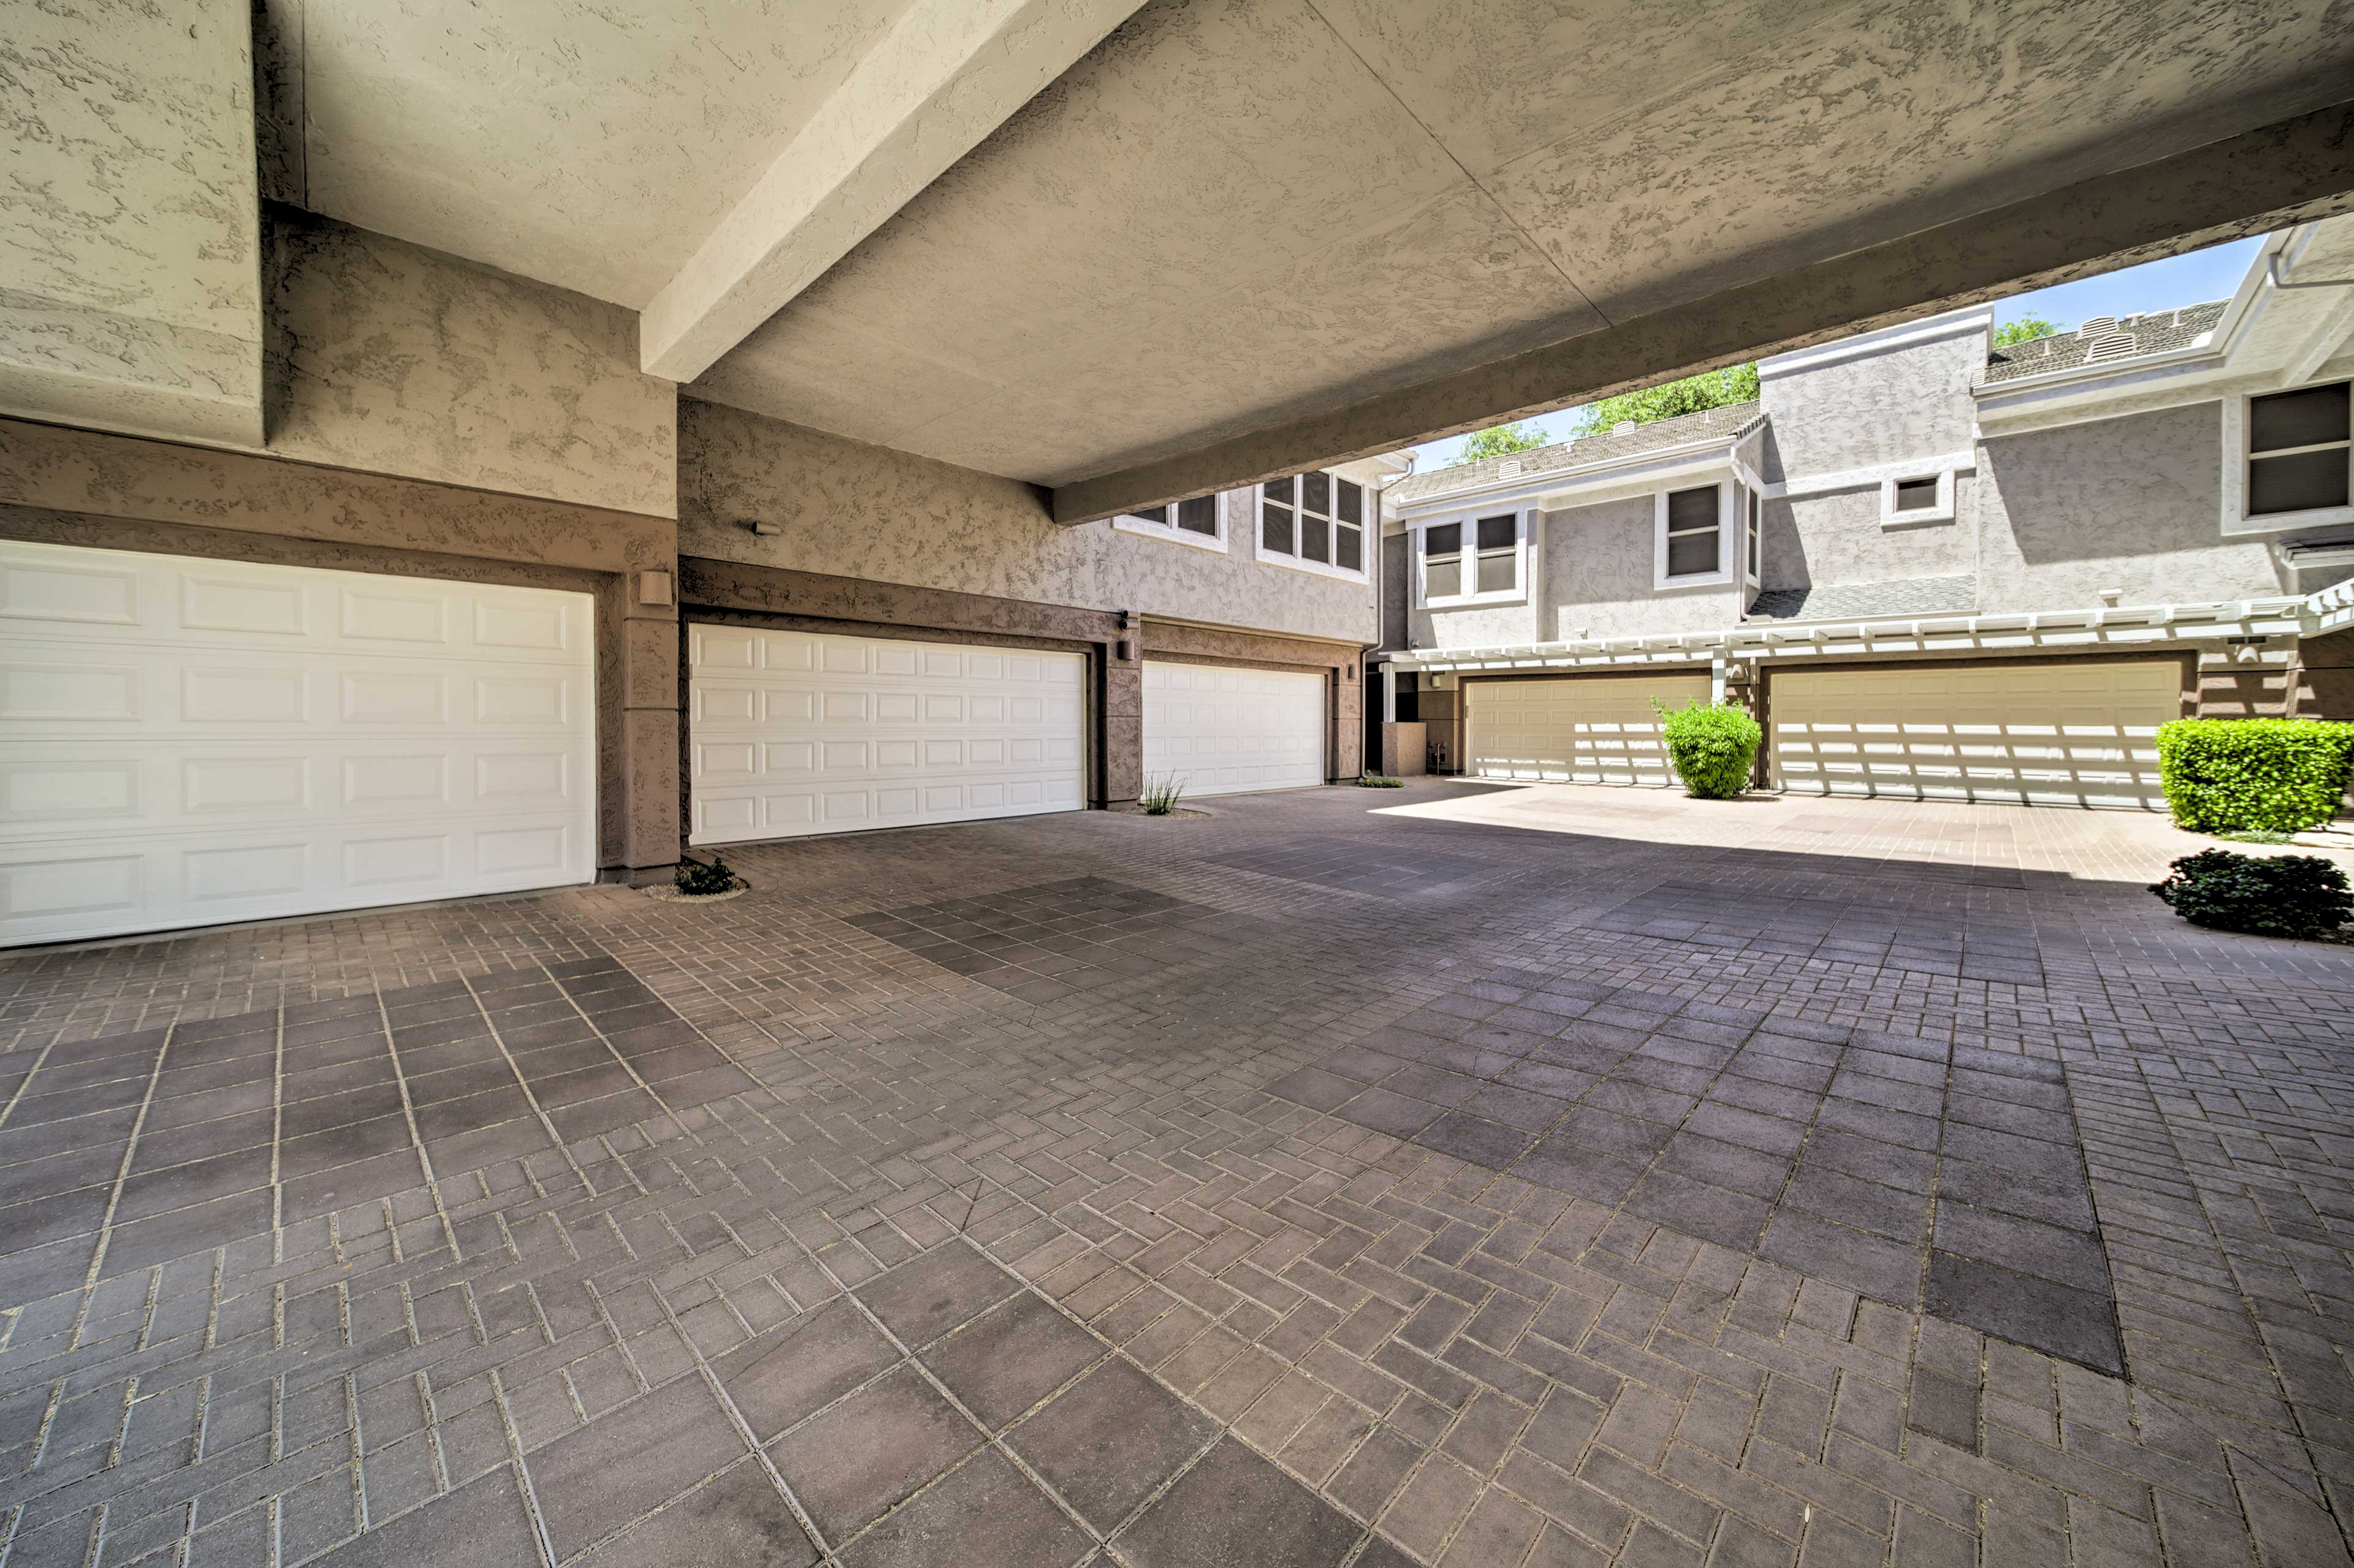 This lavish home even offers a private 2 car garage.